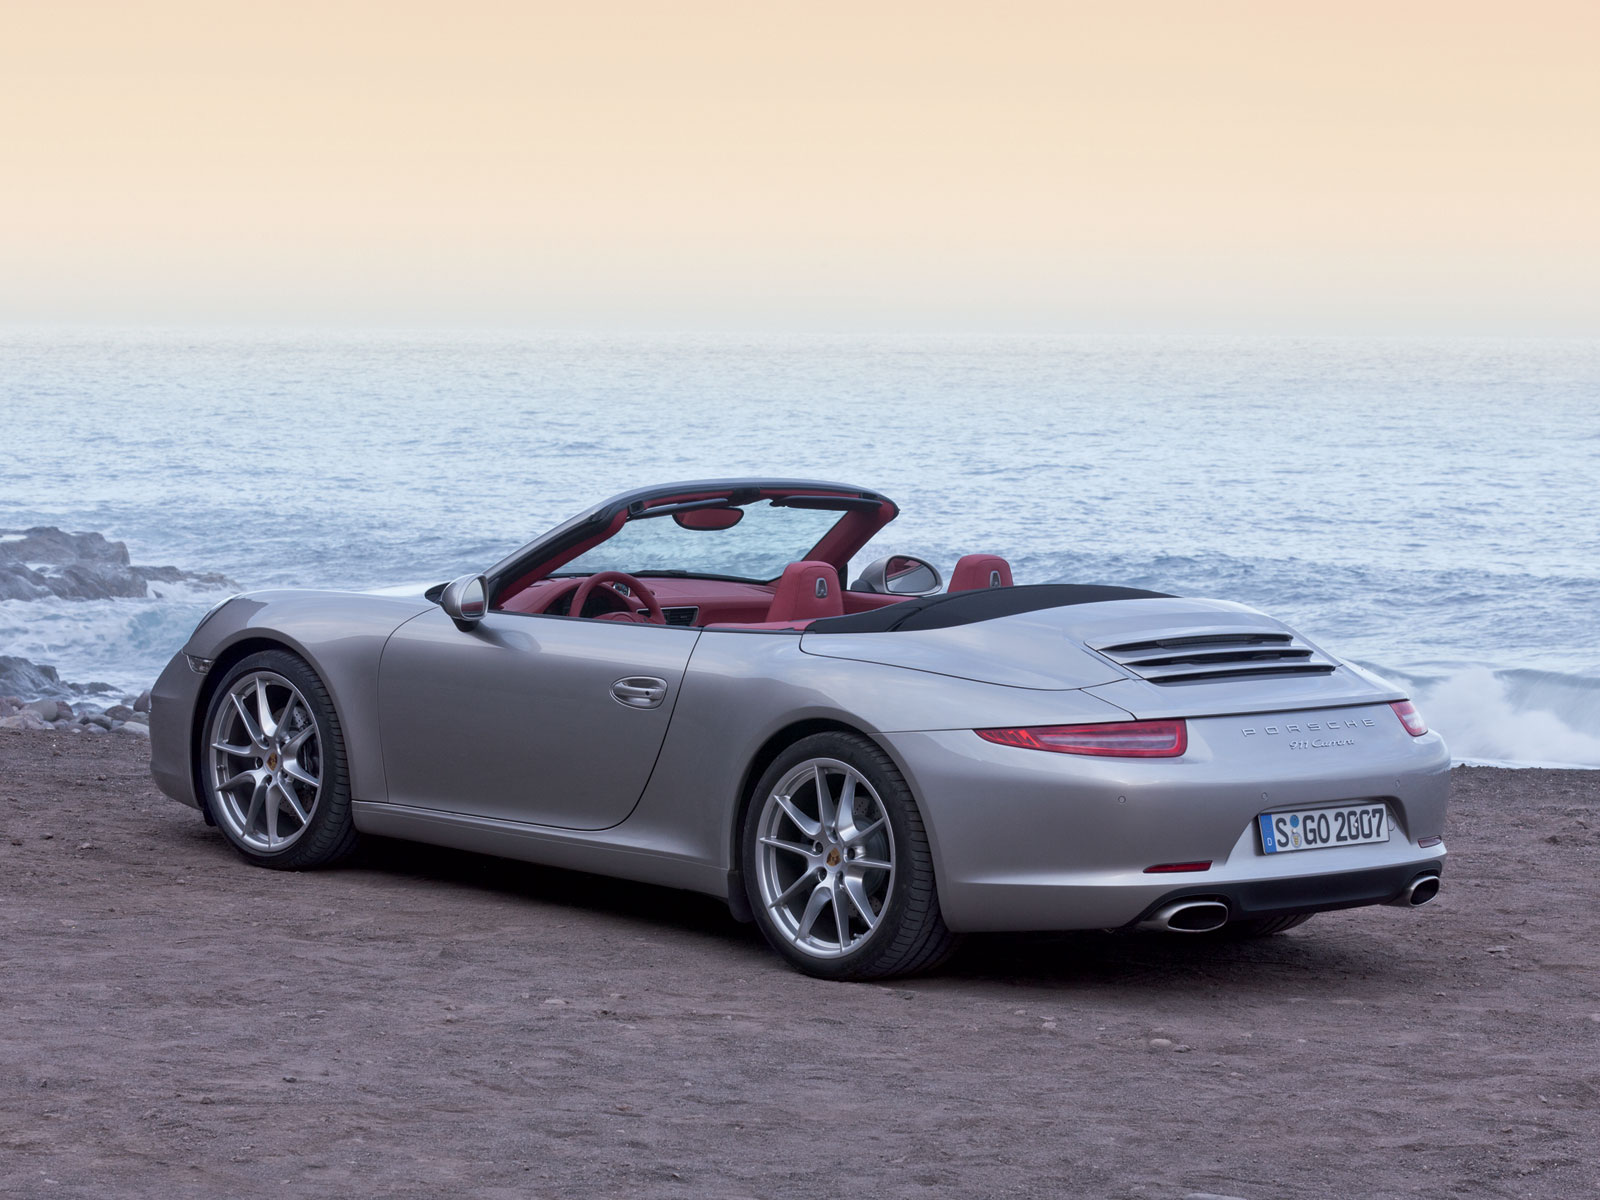 2012 porsche 911 carrera cabriolet modellreihe 991. Black Bedroom Furniture Sets. Home Design Ideas